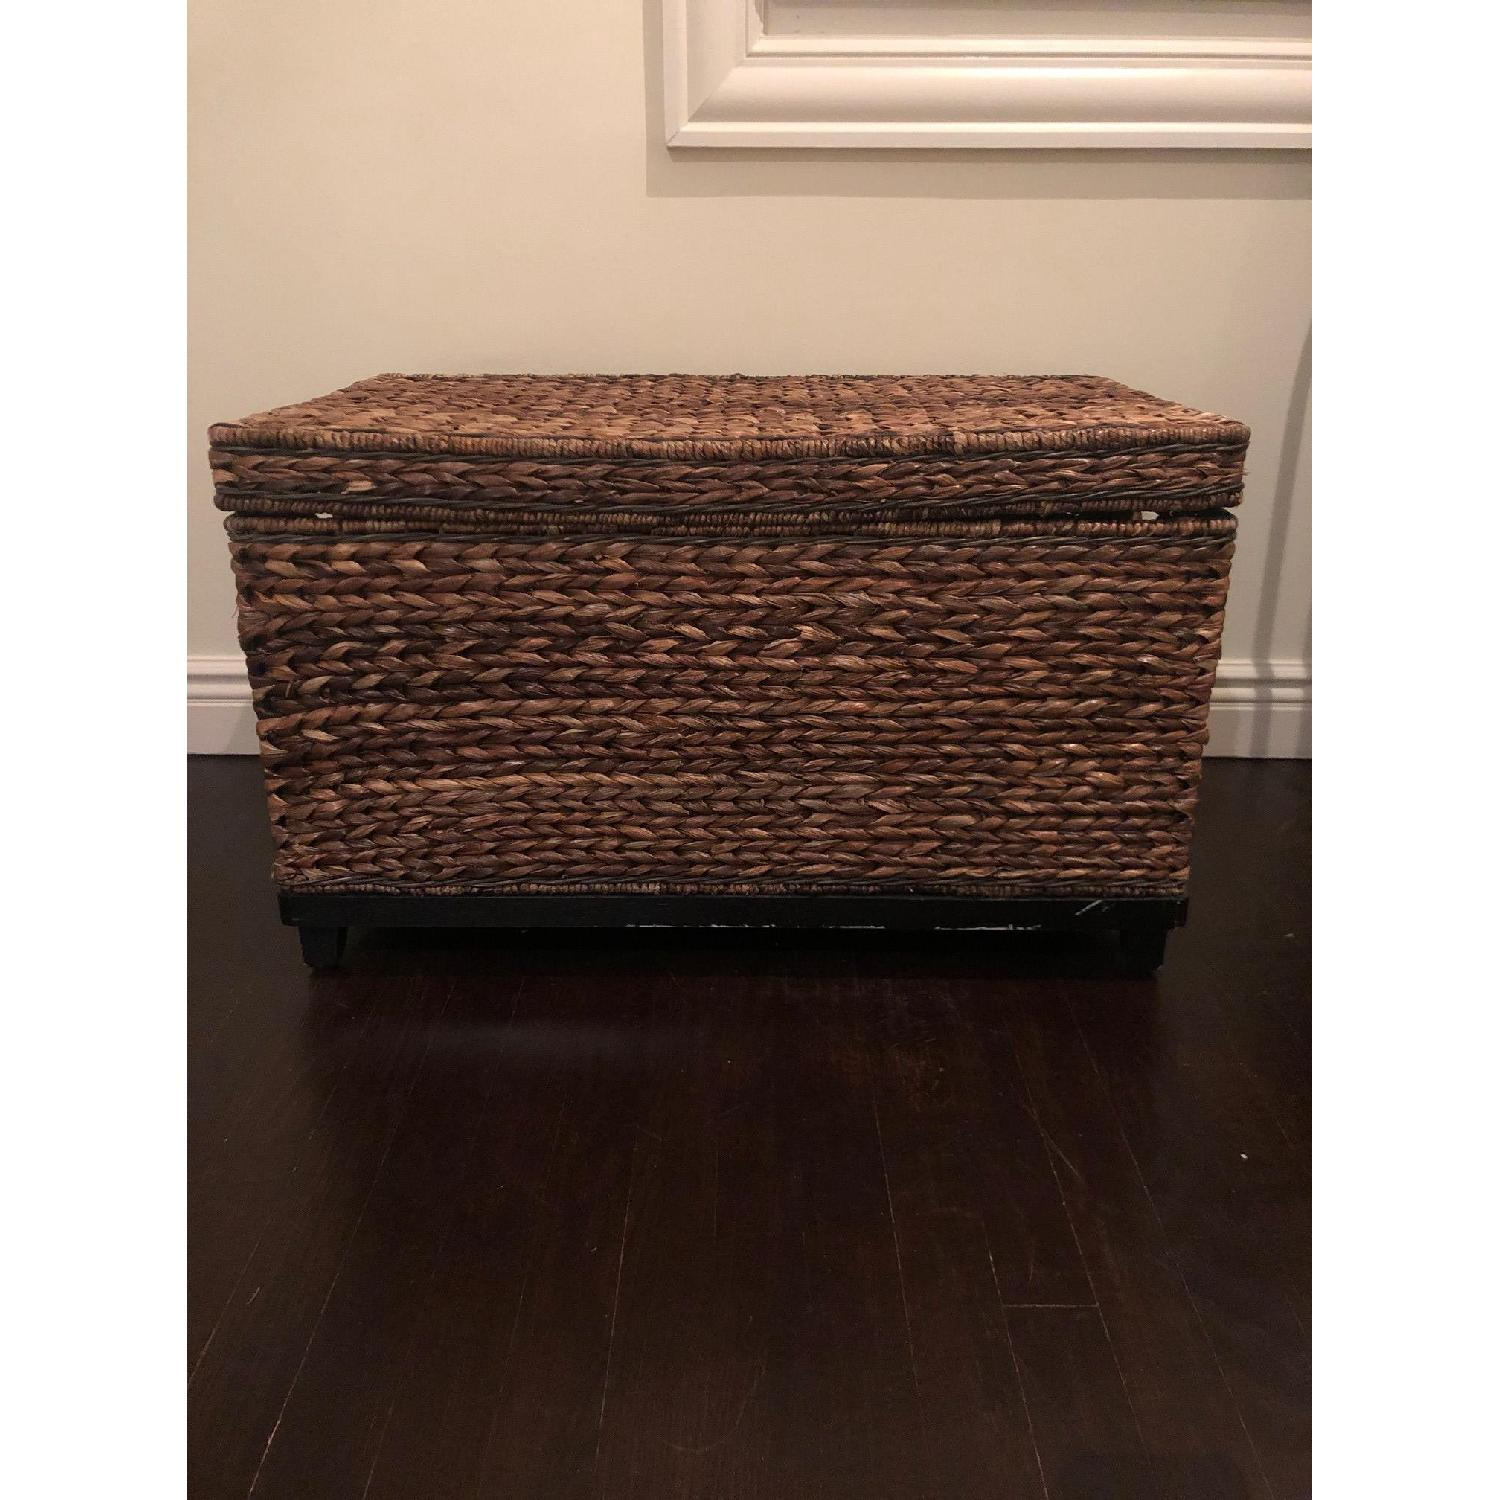 Target Rectangle Wicker Storage Ottoman Bench - image-2